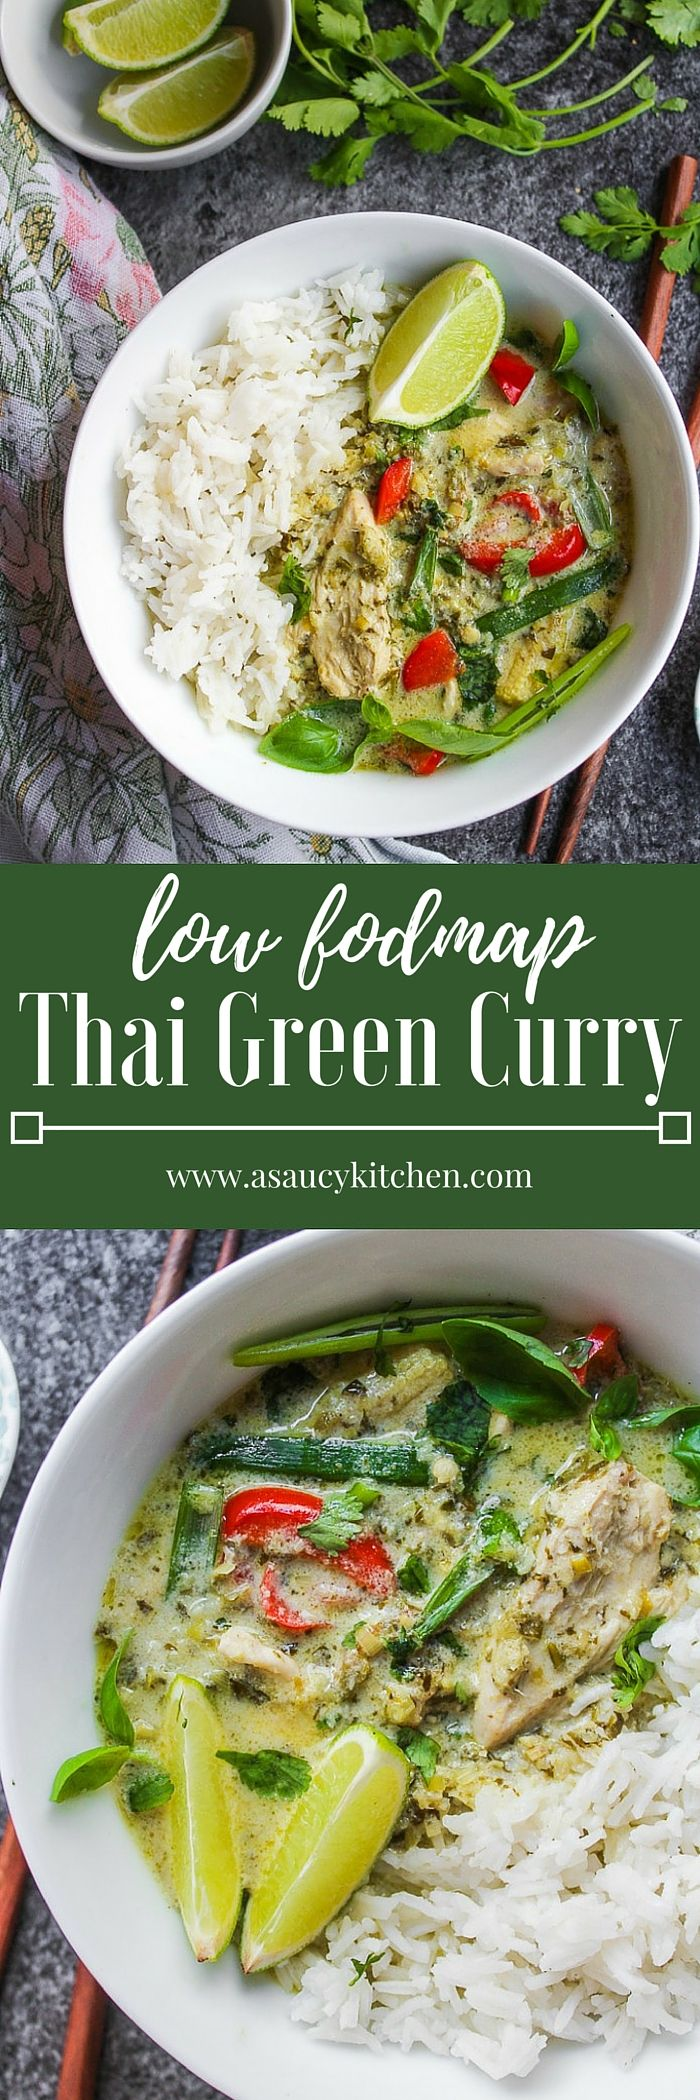 Low FODMAP Thai Green Curry